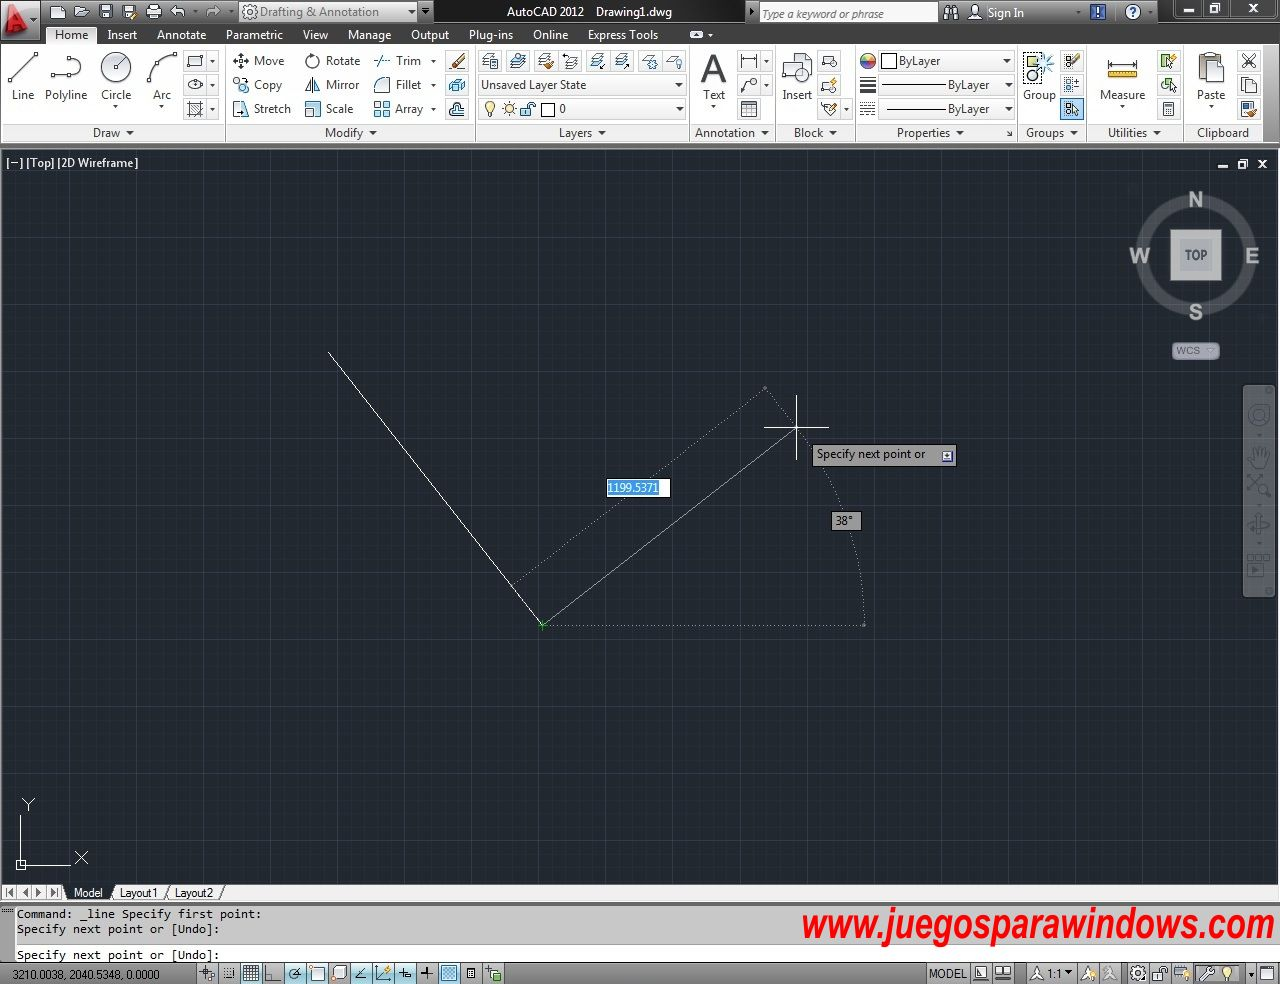 AutoCAD 2012 Español Ingles 32 64 Bits Windows Screenshot